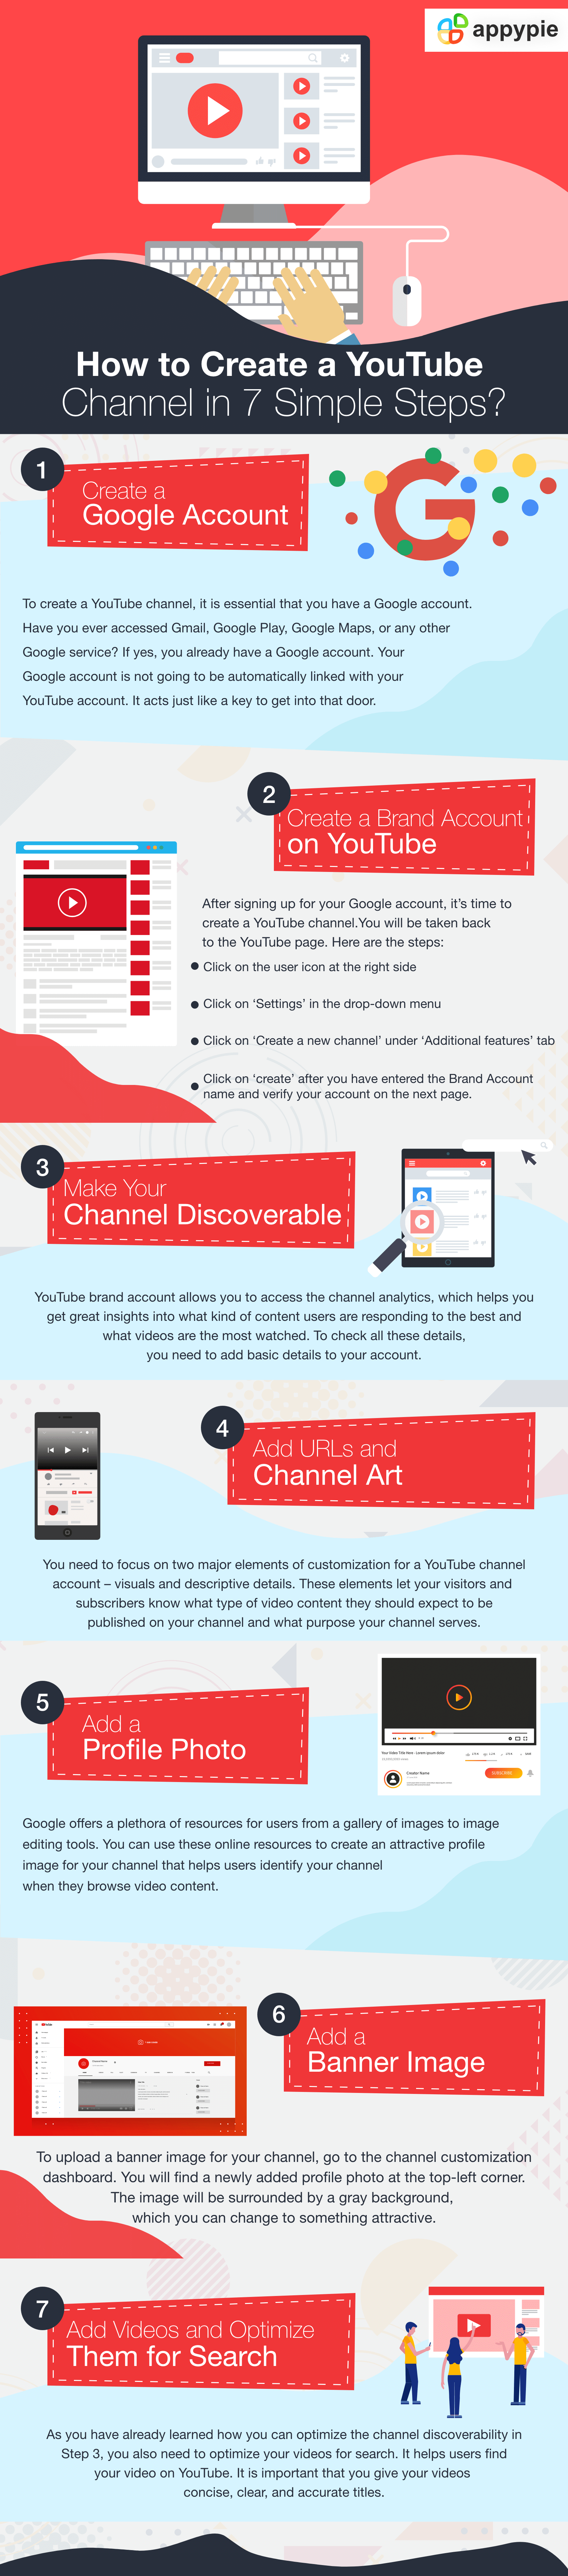 How to Create a YouTube Channel in 7 Simple Steps - Appy Pie